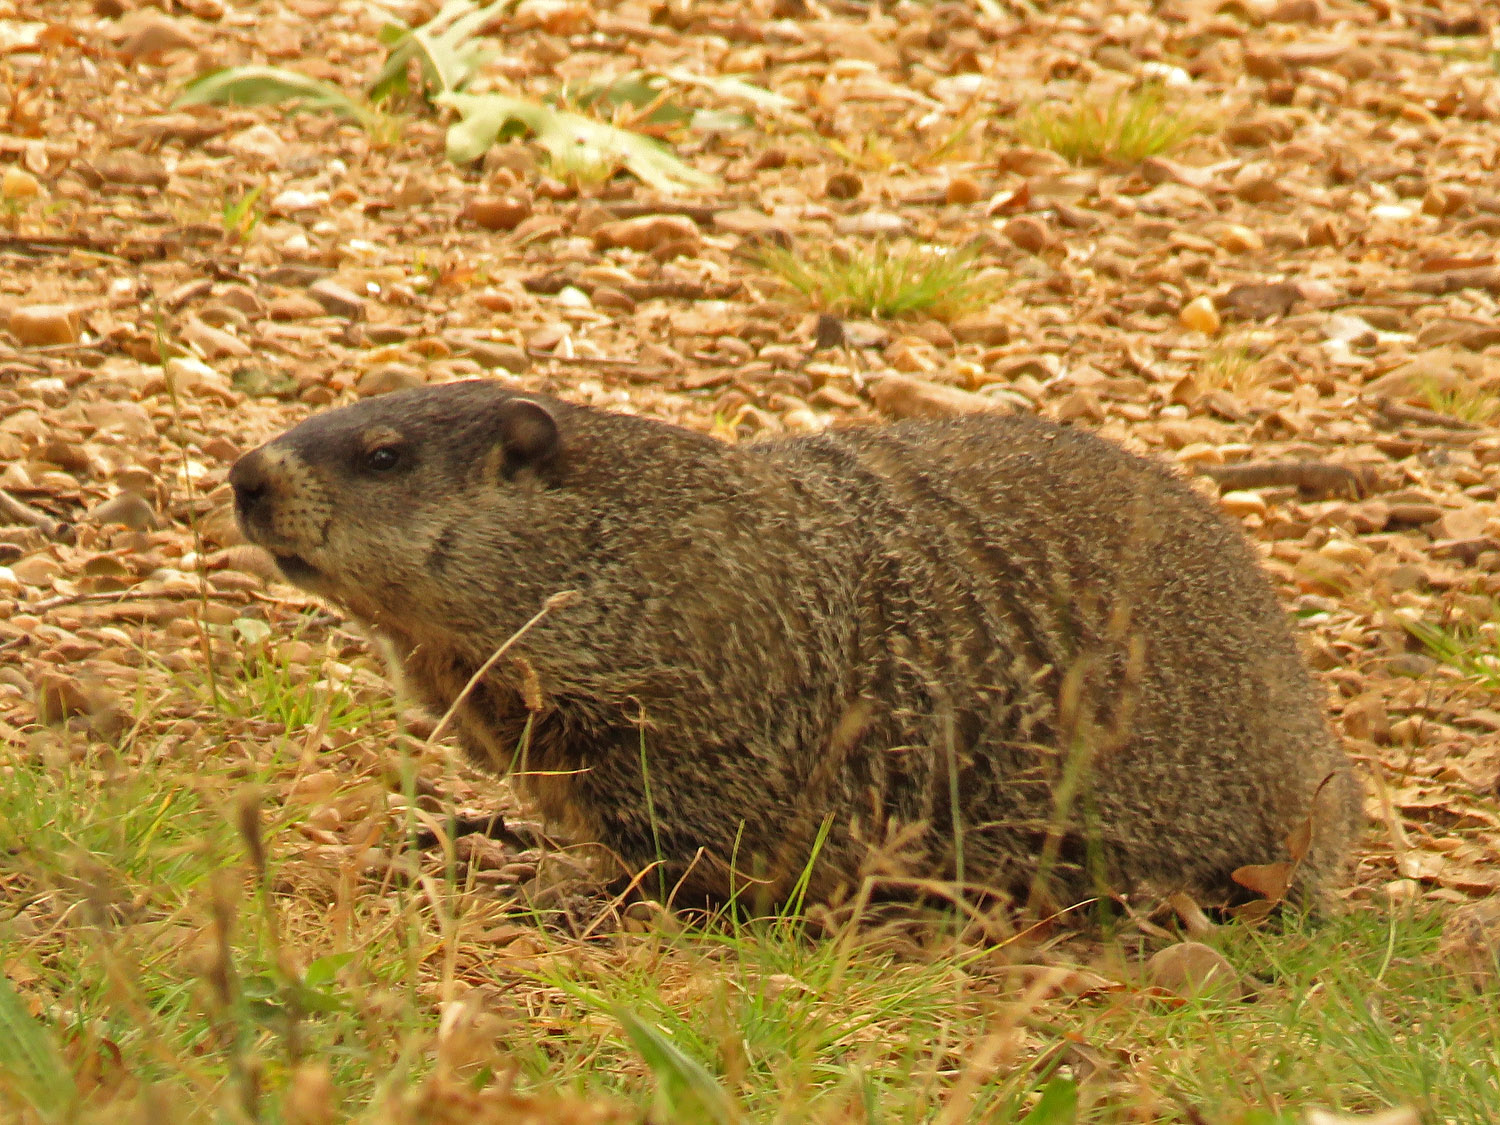 Groundhog, Wolfe's Pond, Staten Island, September 21, 2017